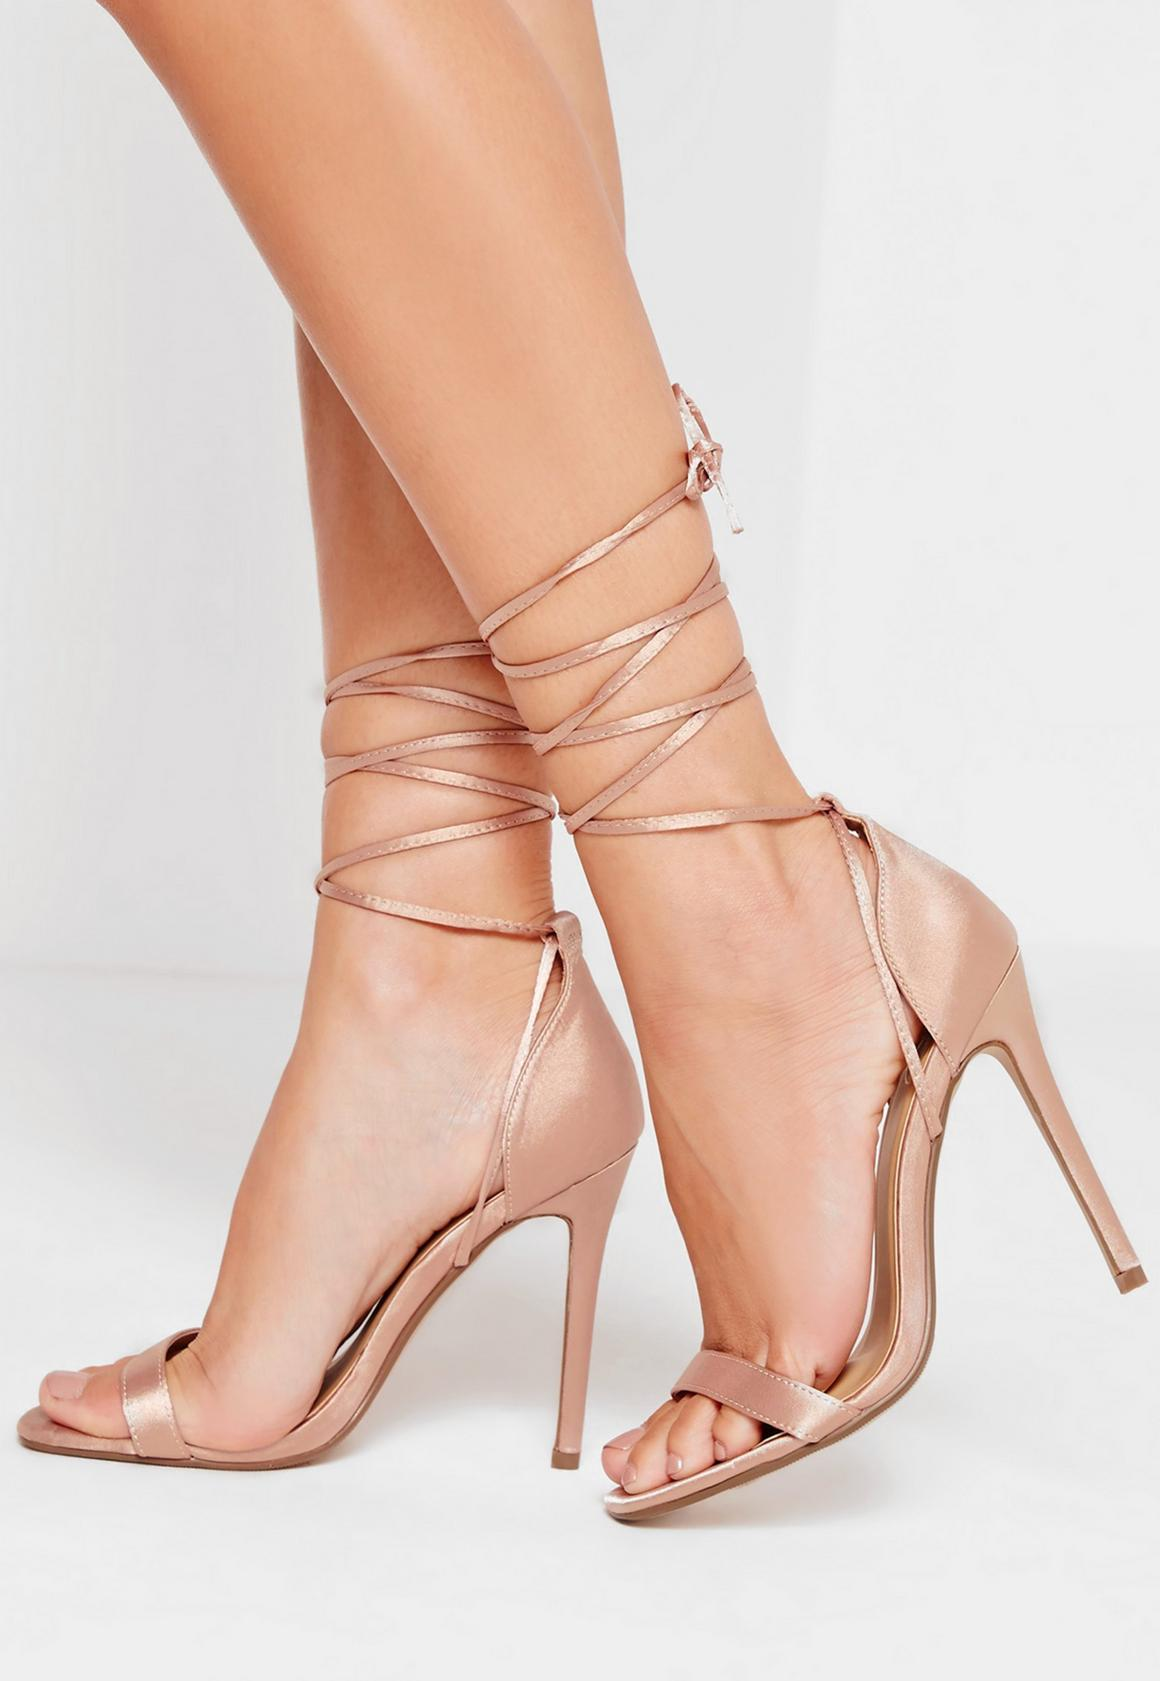 Lace Up Satin Barely There Heels Nude | Missguided Australia